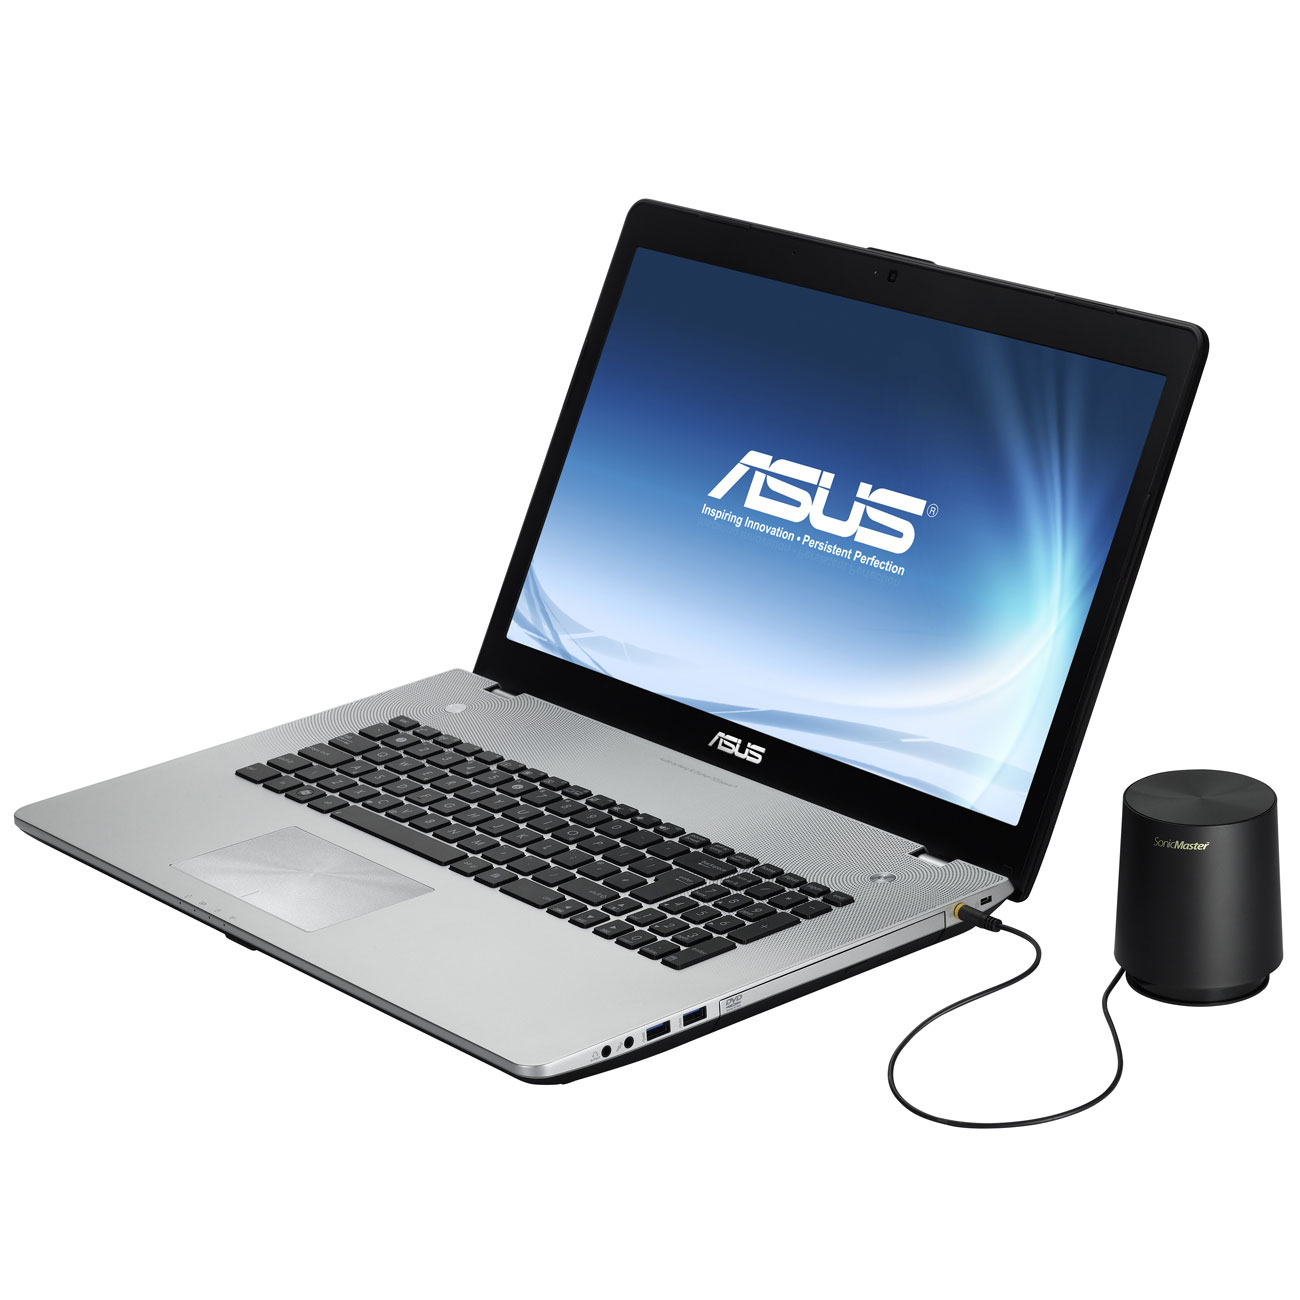 asus n76vb tz144h pc portable asus sur. Black Bedroom Furniture Sets. Home Design Ideas